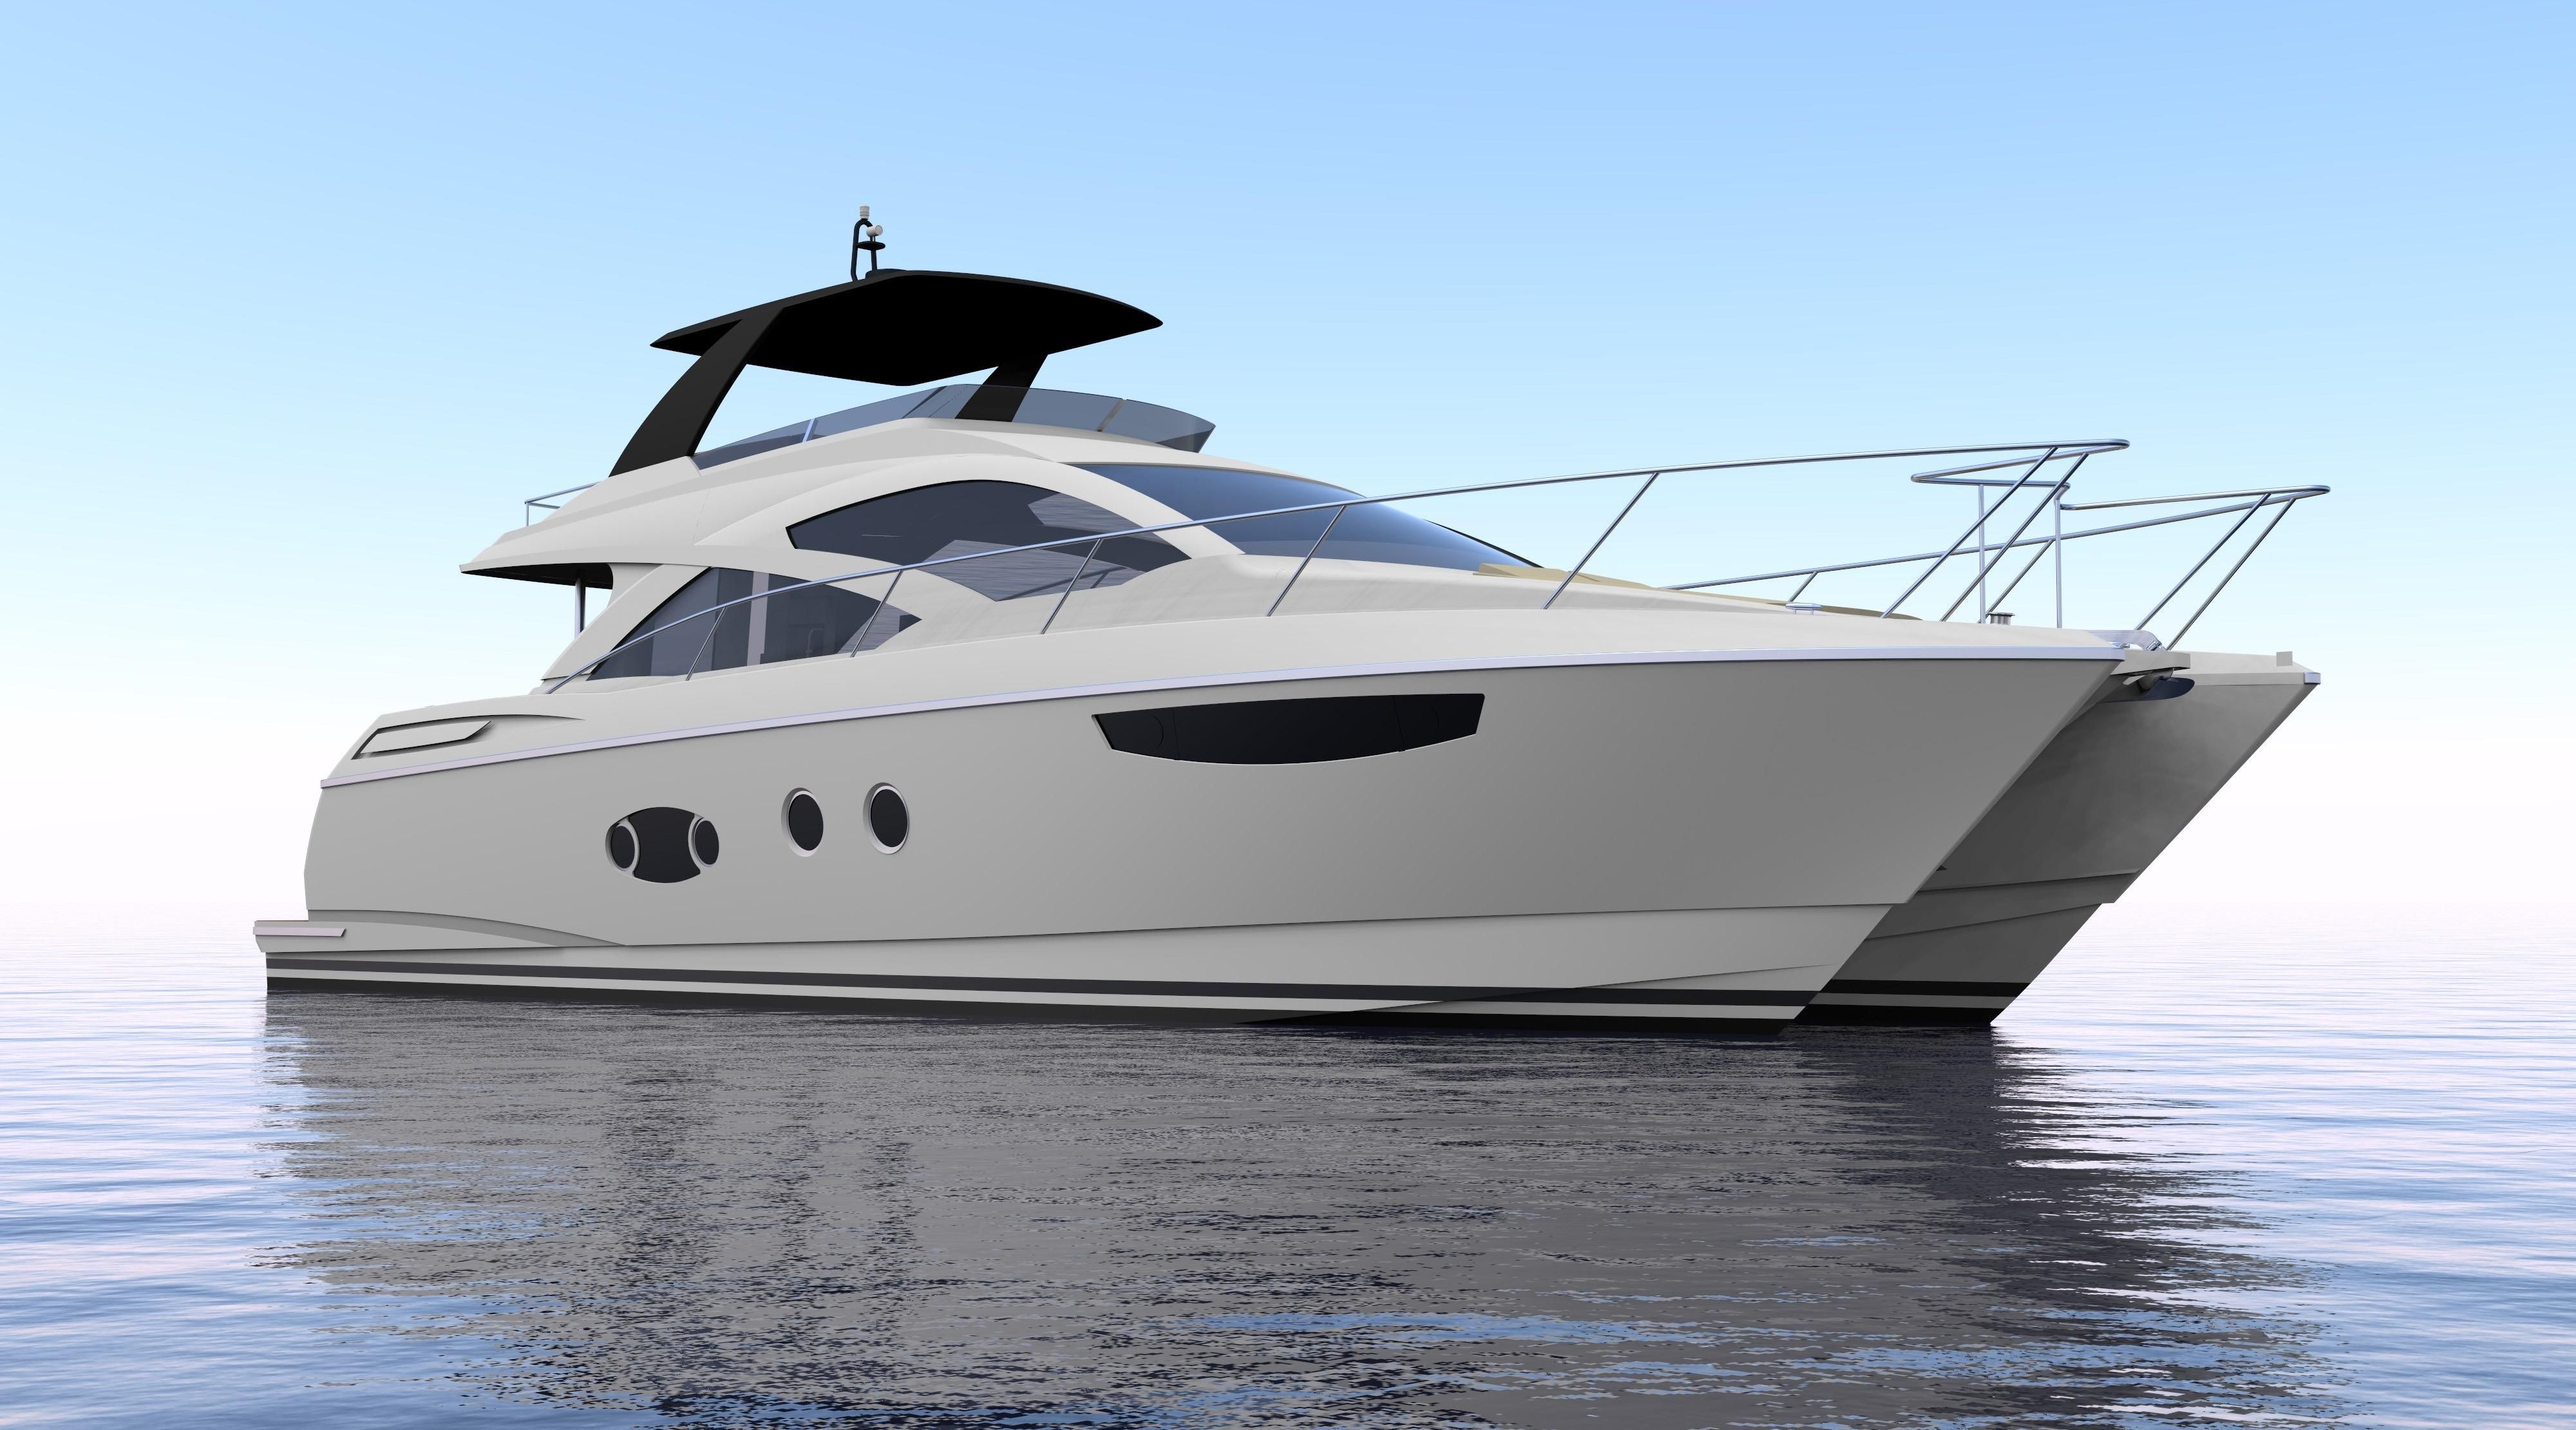 Motor Yacht: 2018 Mares 65 Motor Yacht Power Boat For Sale